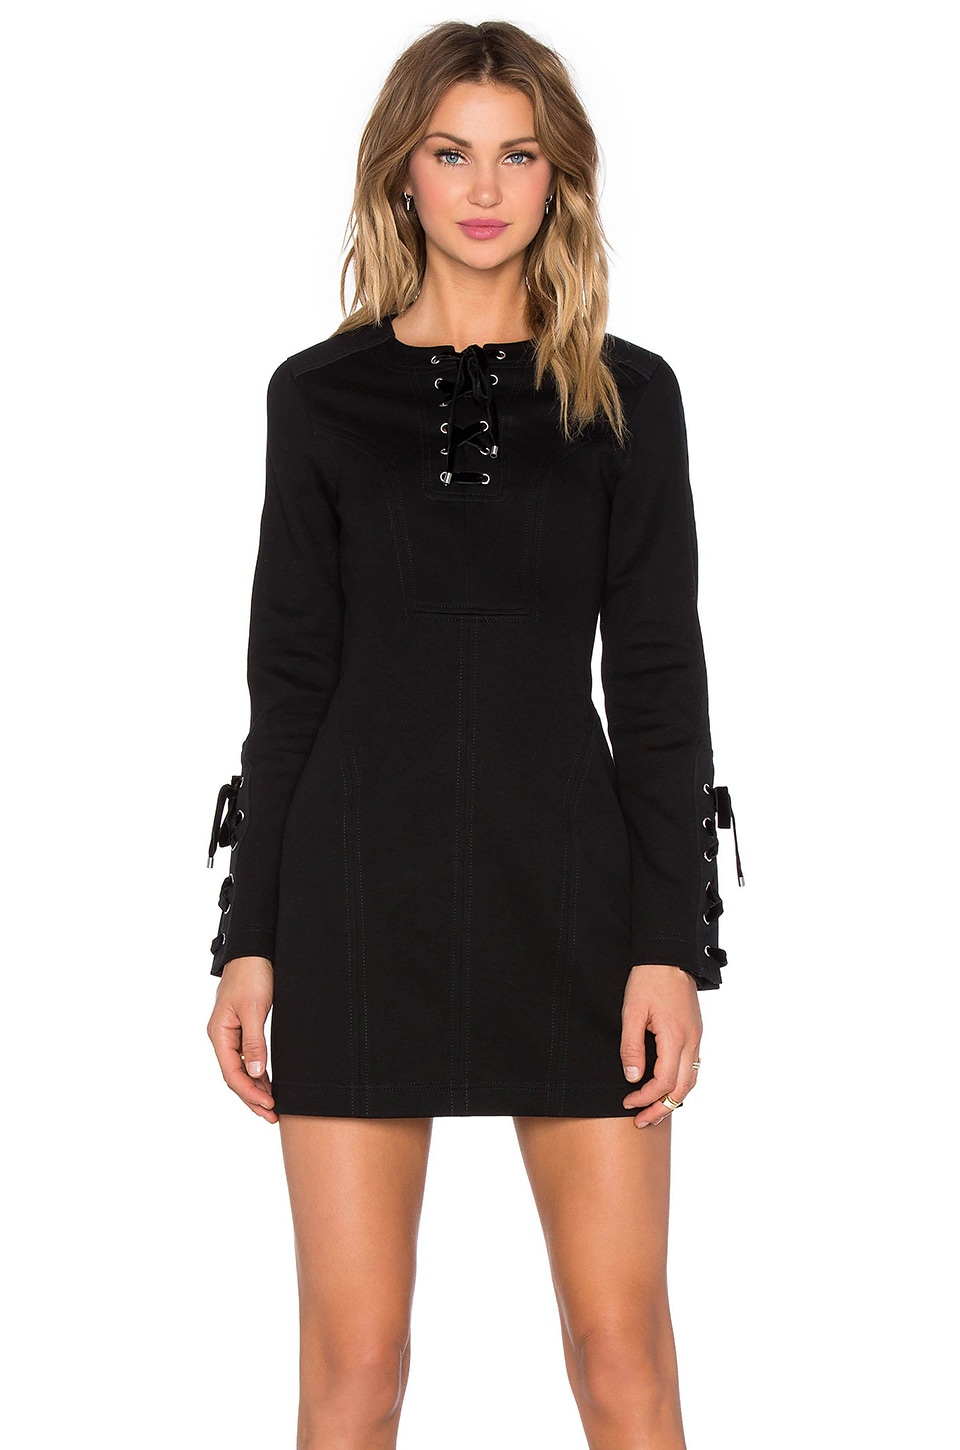 Marc by Marc Jacobs Black Dress